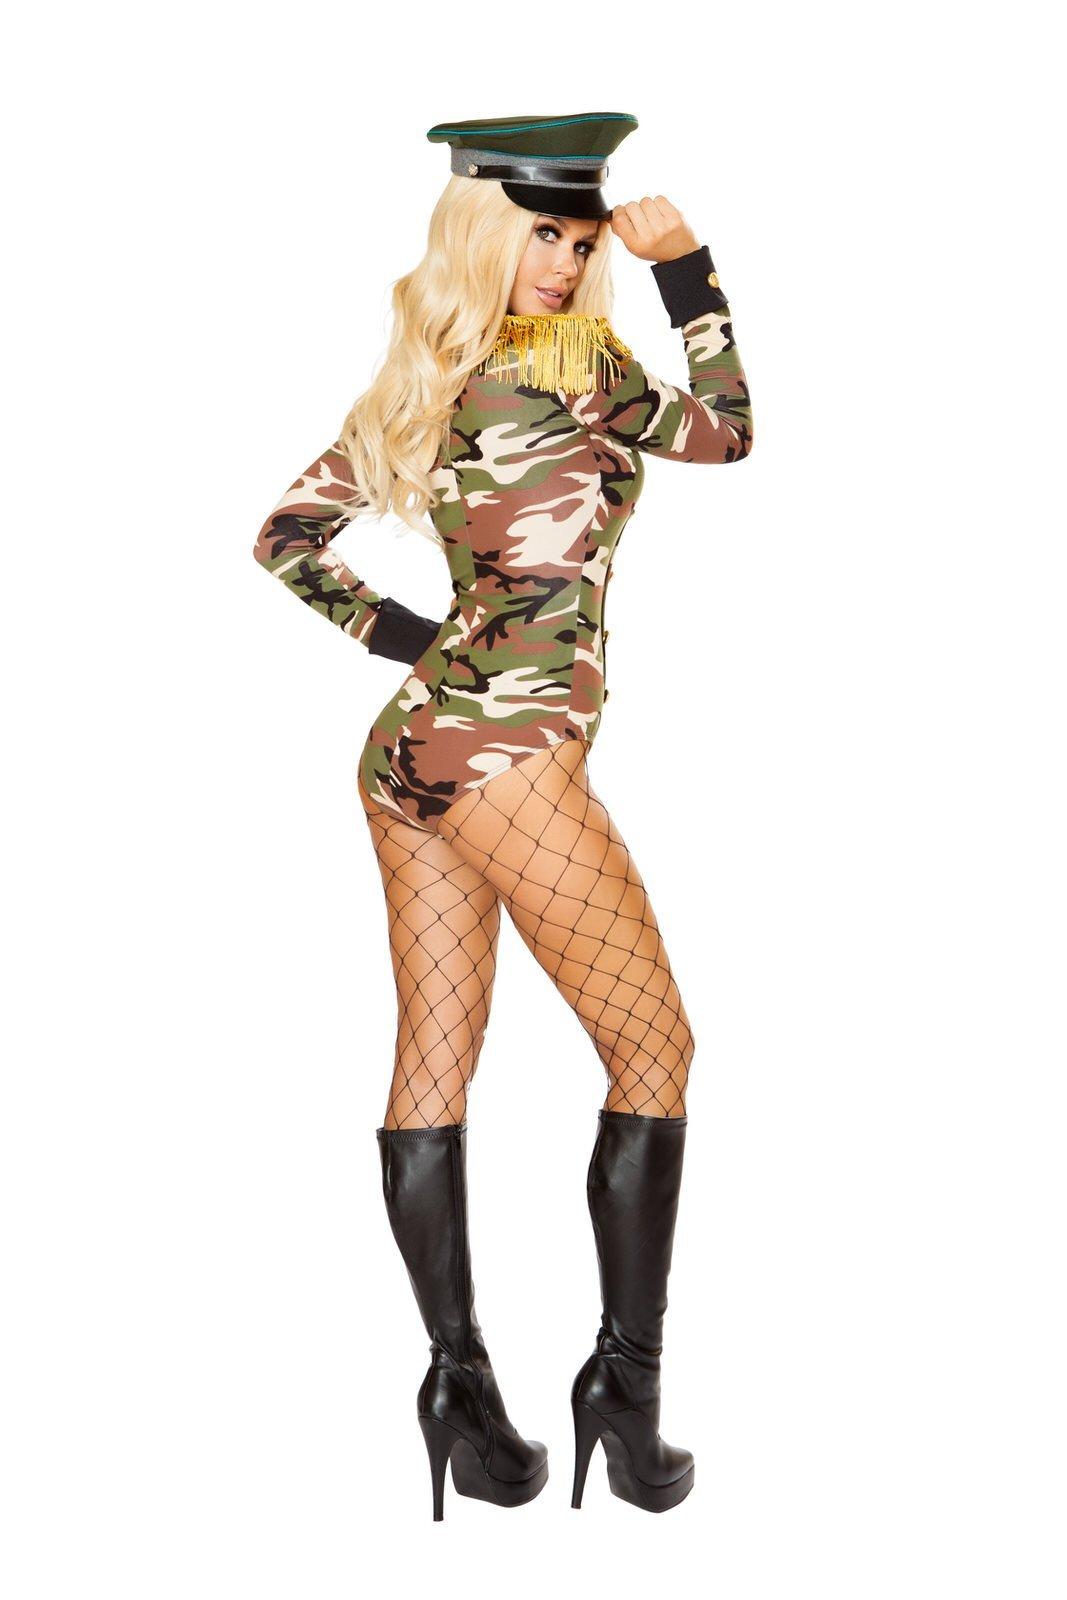 4817 - Roma Costume 1pc Army Girl